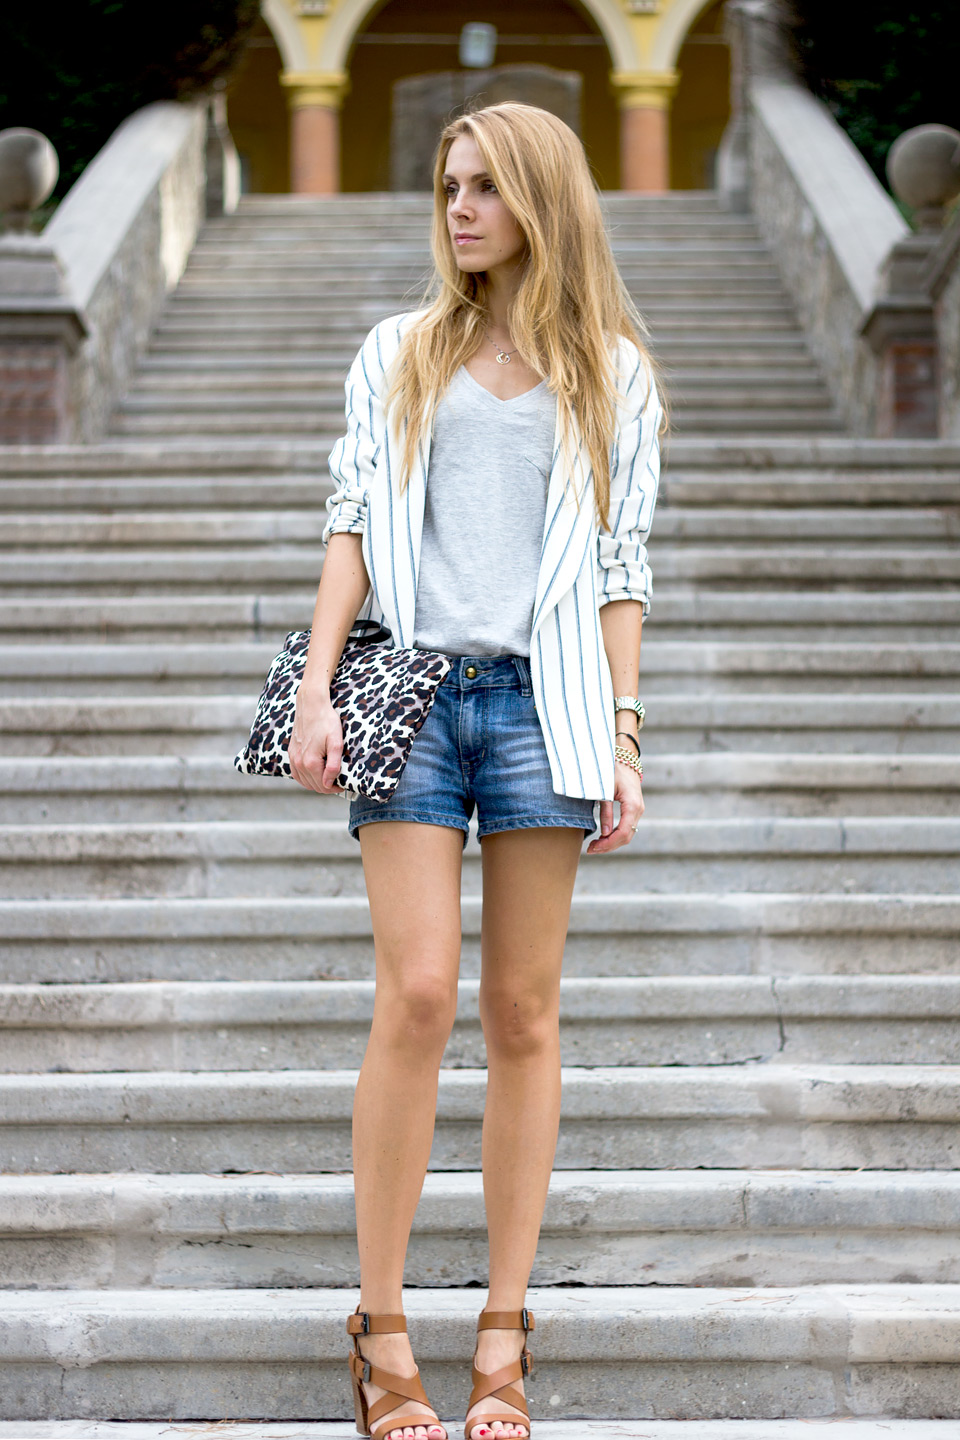 striped blazer, denim shorts, leopard print clutch, summer outfit